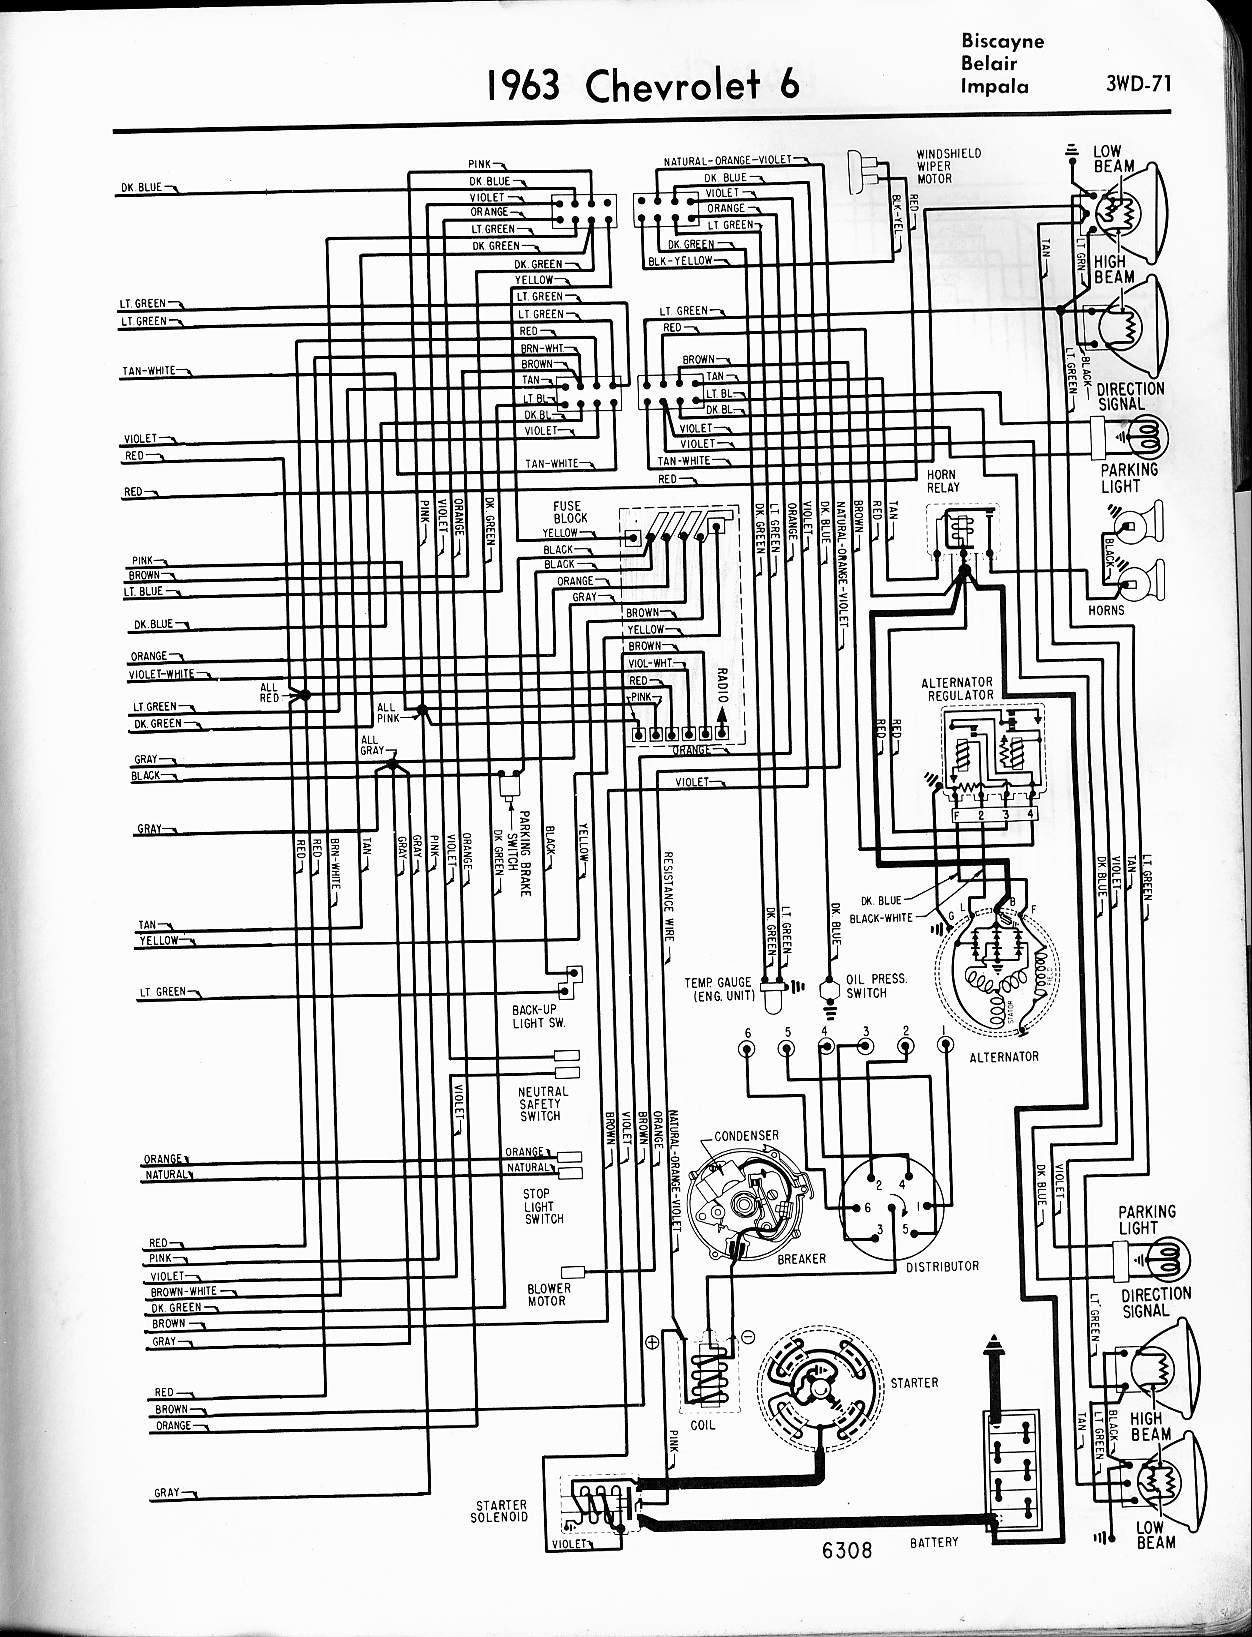 MWireChev63_3WD 071 57 65 chevy wiring diagrams 1963 chevrolet c30 wiring harness diagram at gsmx.co